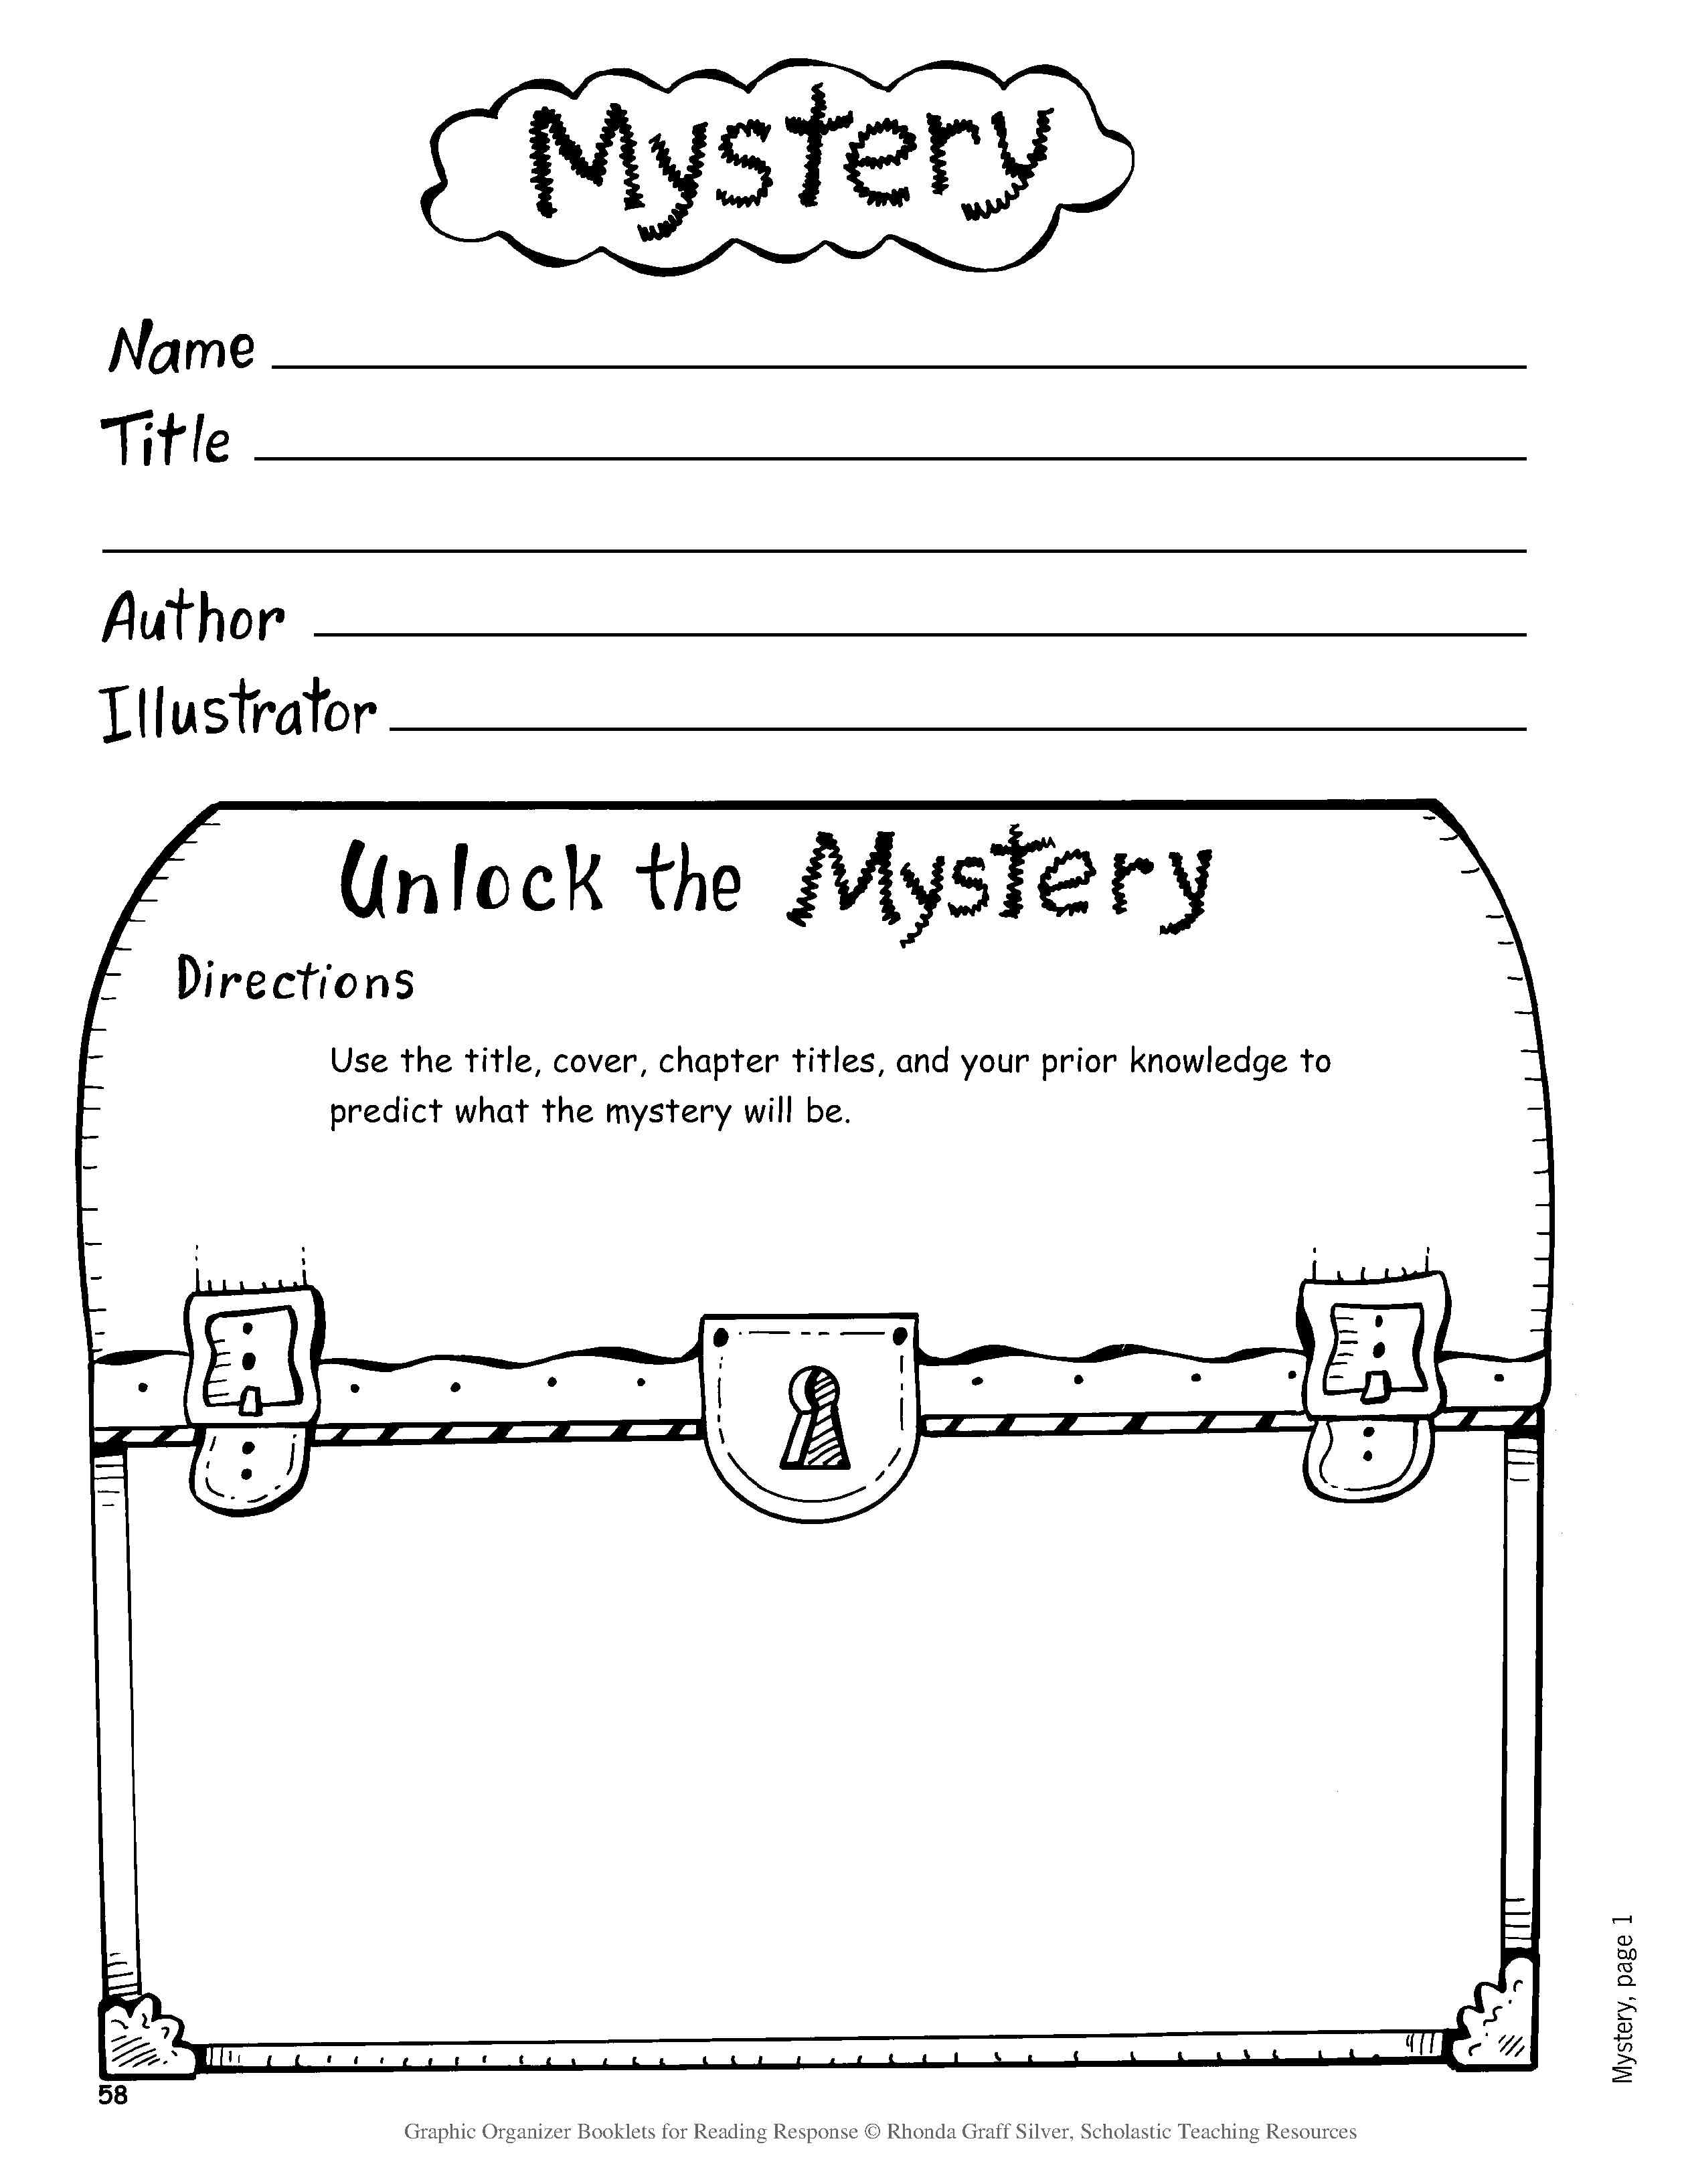 Free Worksheet Genre Worksheets mystery elements worksheet laveyla com investigating the genre scholastic